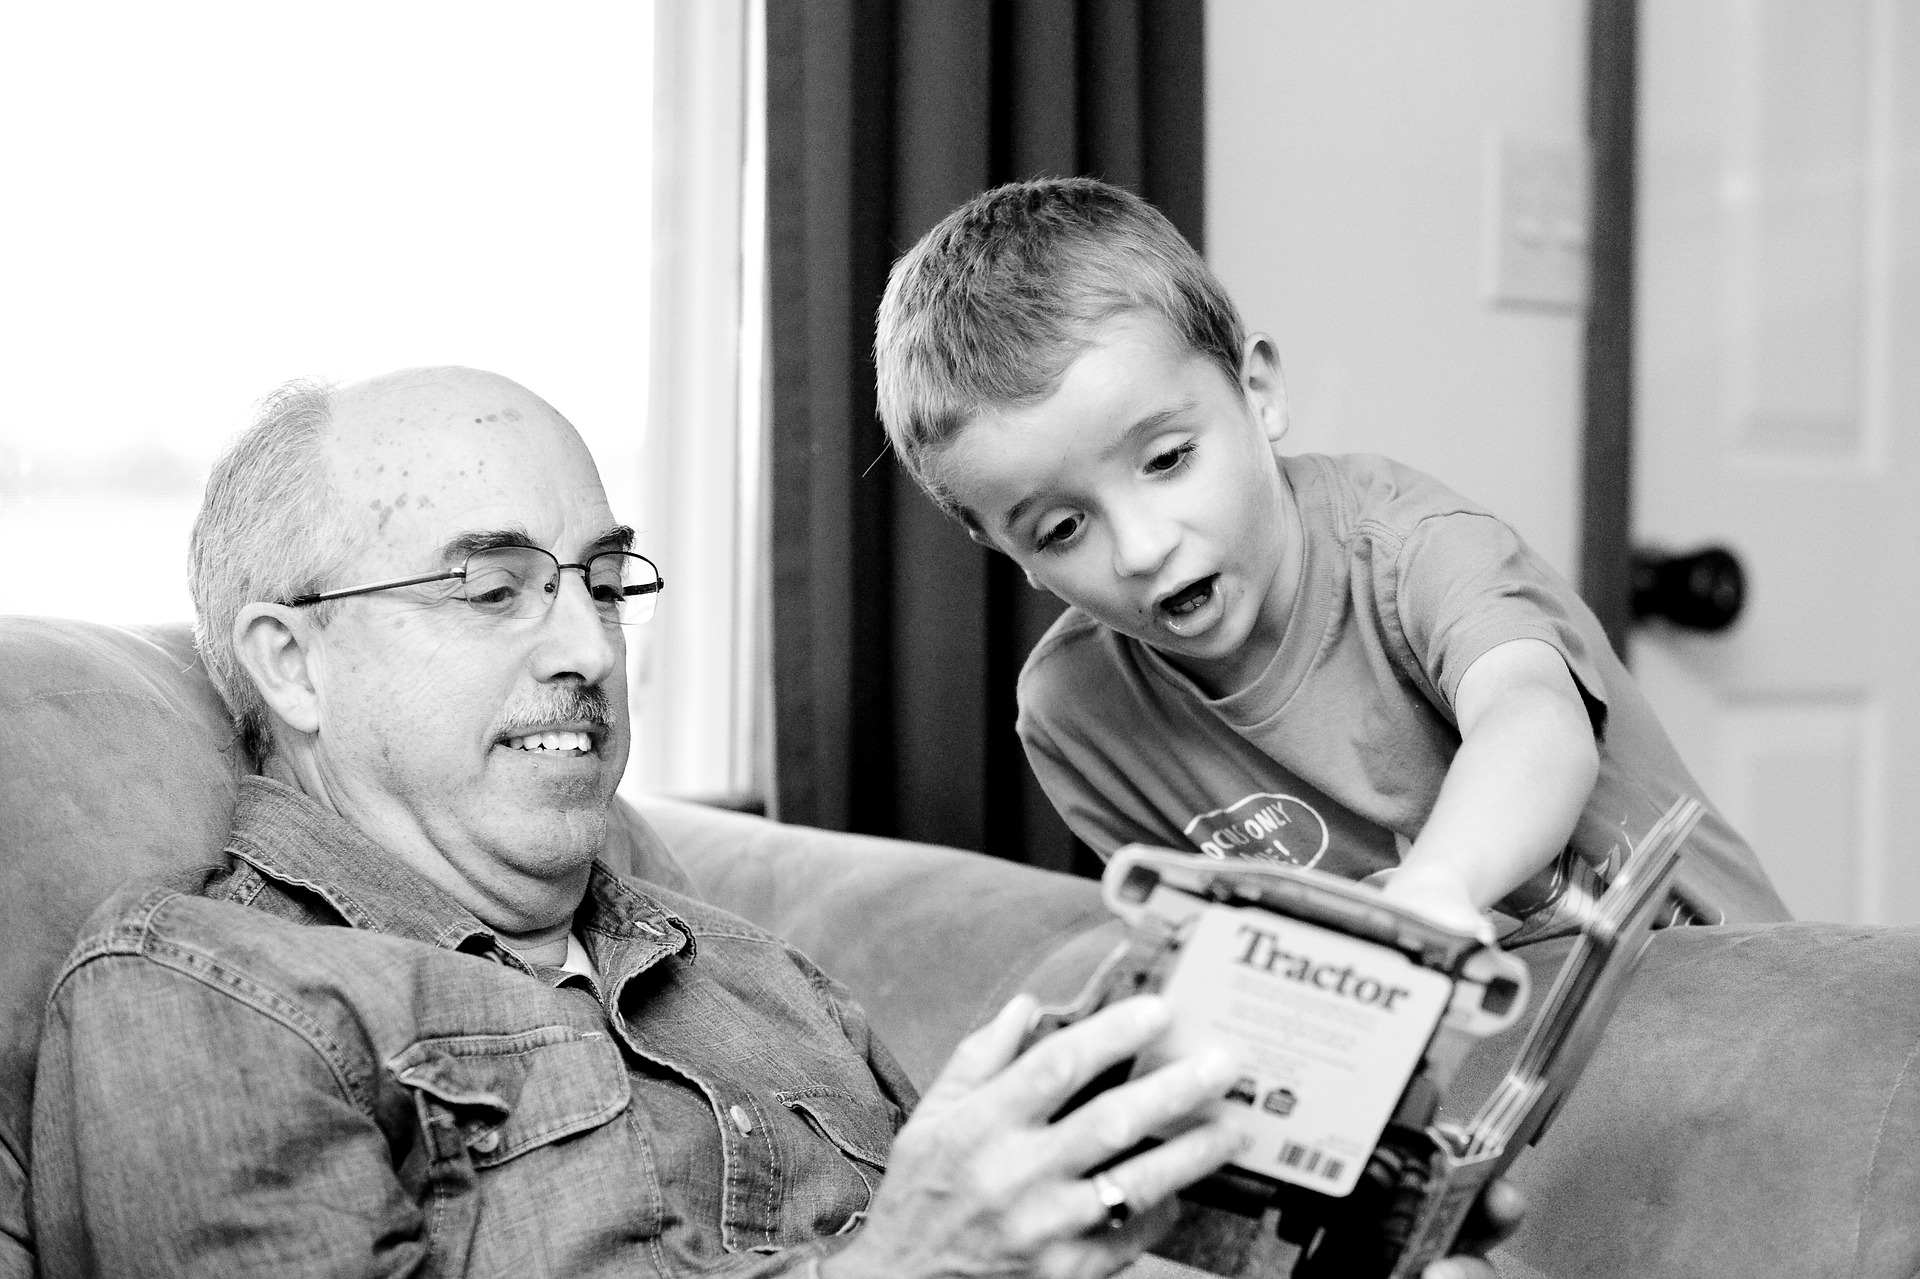 Black and white photo of an older man sitting on a couch holding a book, while a young boy looks on.